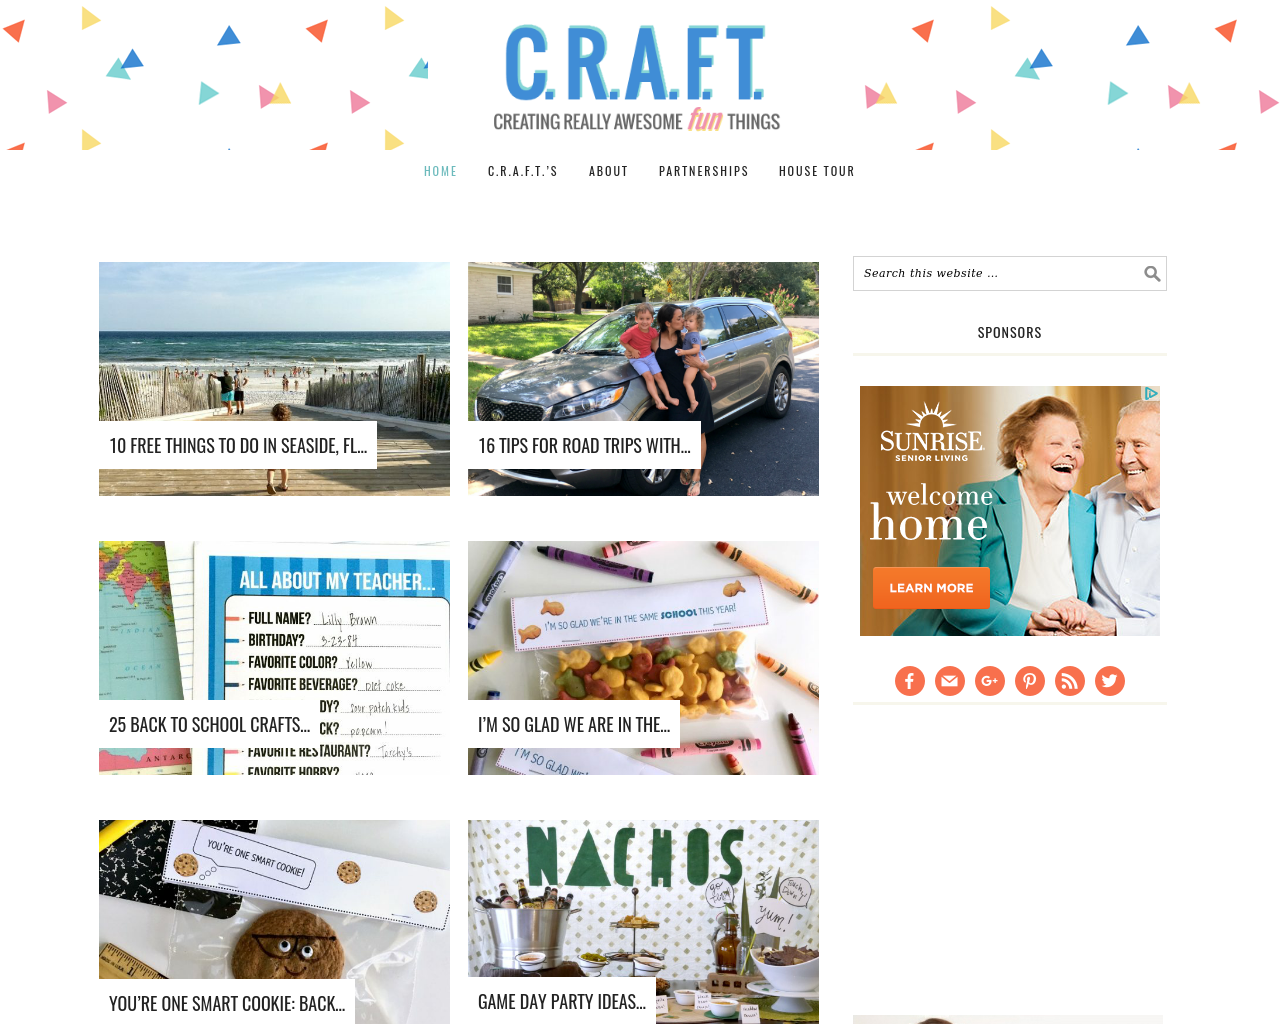 C.R.A.F.T.-Advertising-Reviews-Pricing